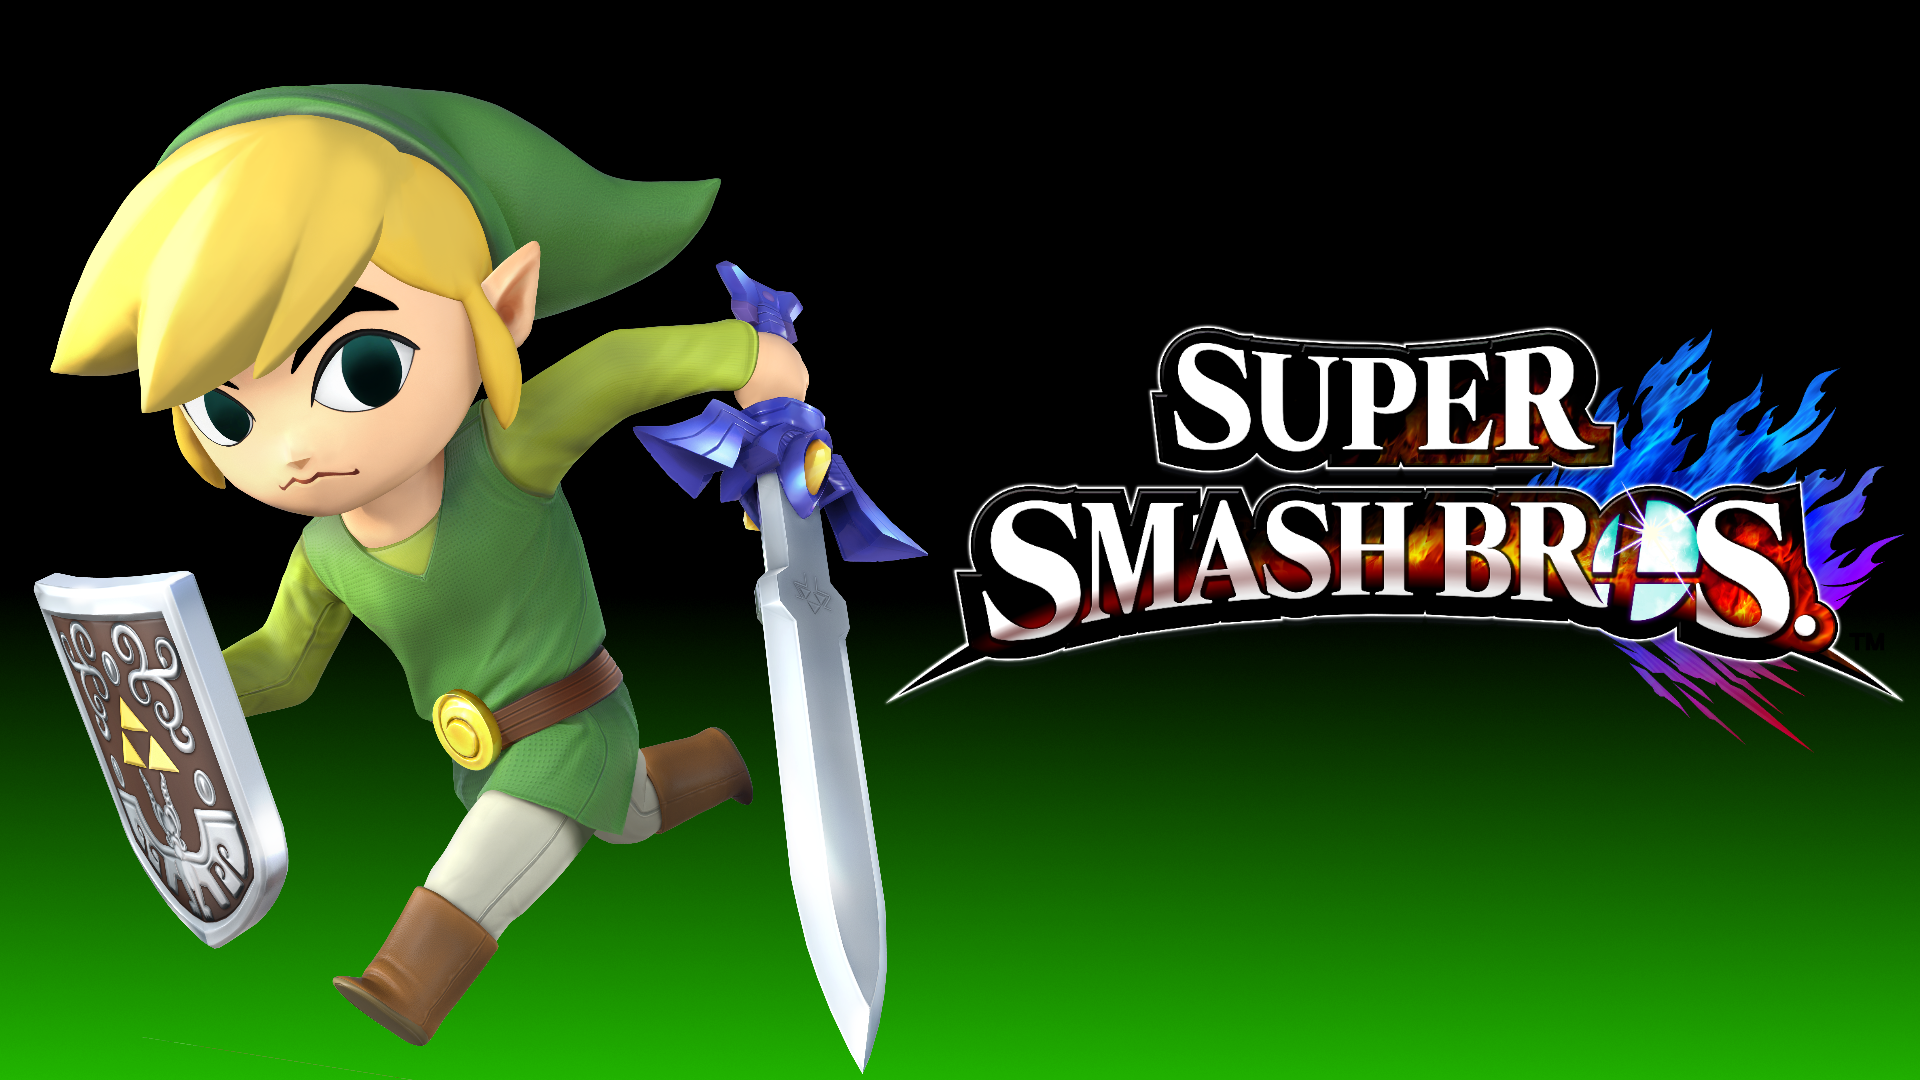 Super Smash Bros 4 Wallpaper